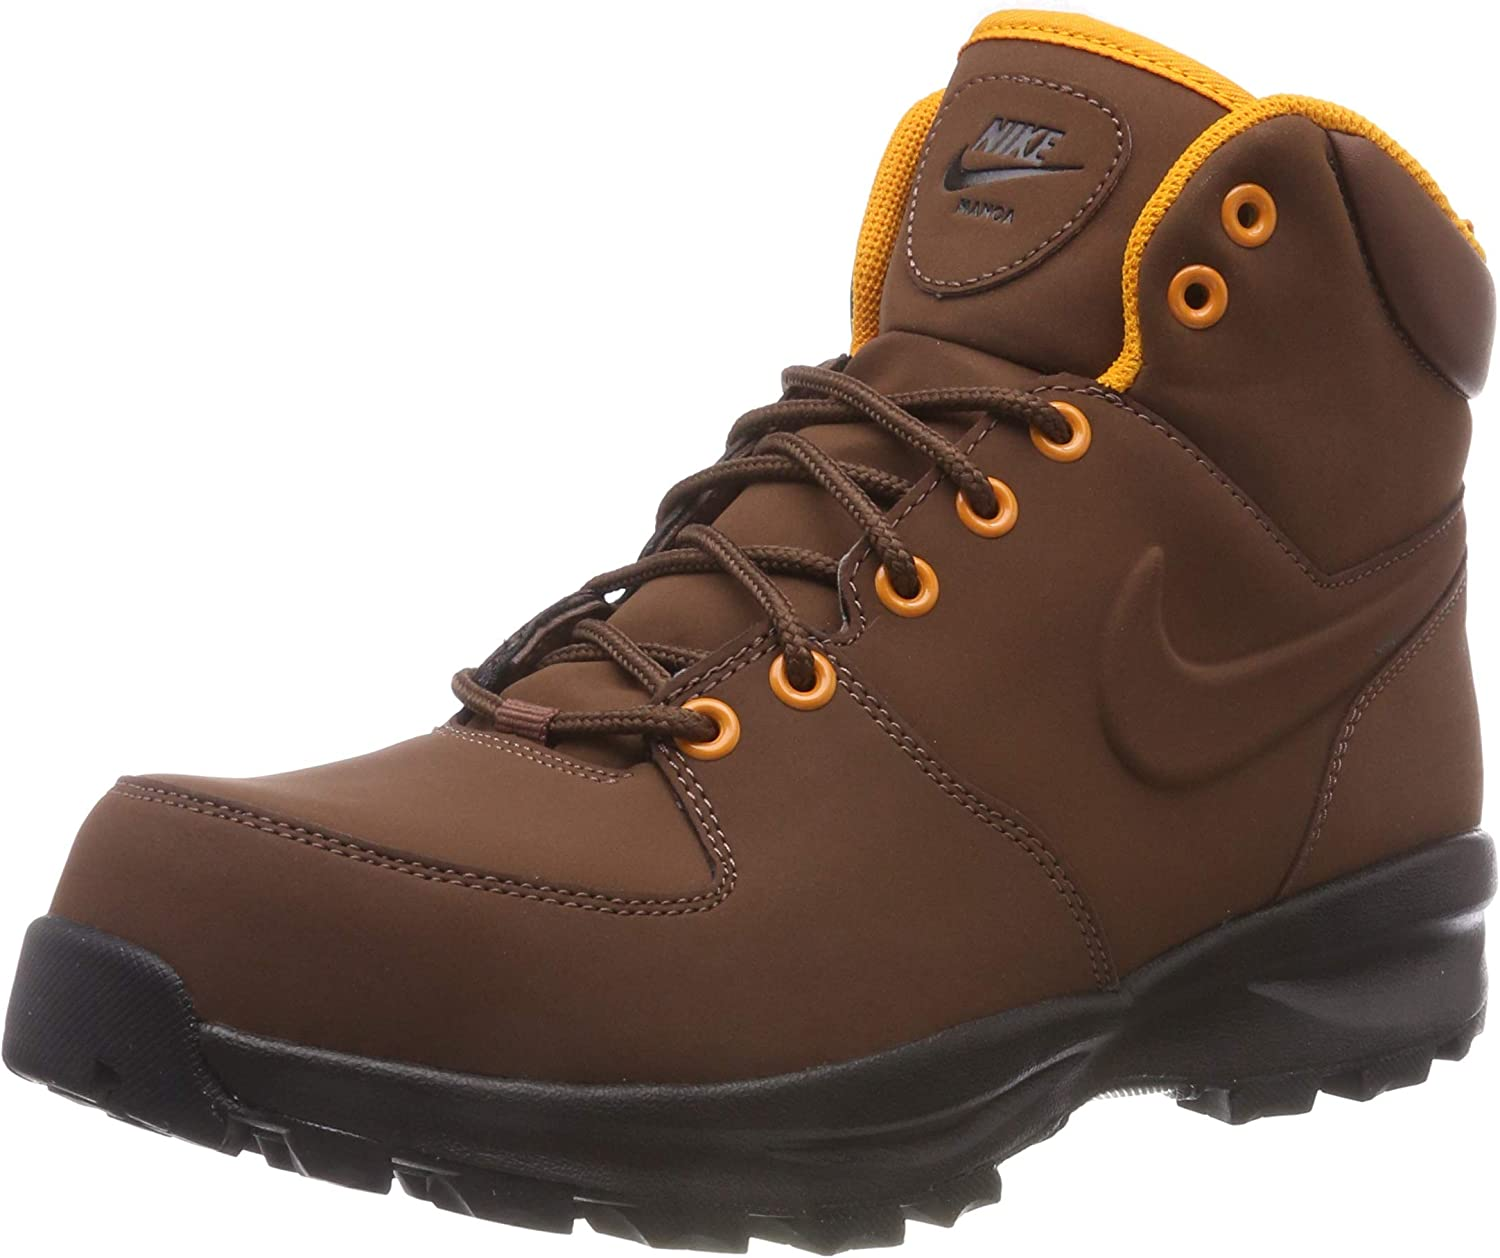 Nike Men s Manoa Leather Boot Fauna Brown Size 9 M US